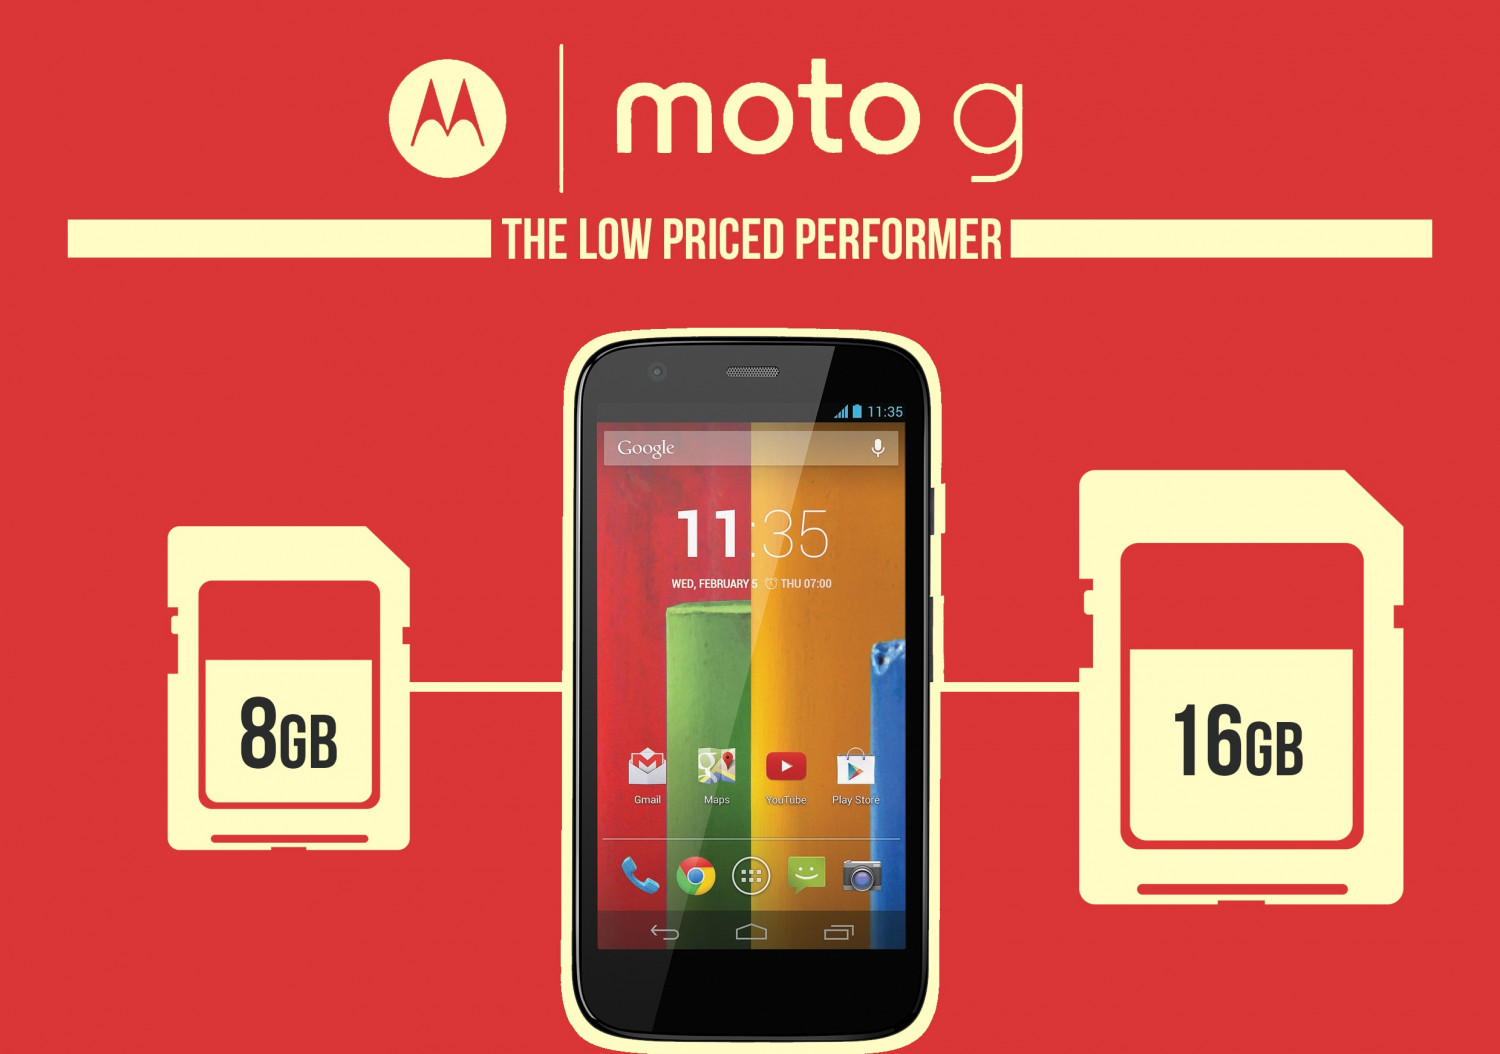 Moto G GraphicReviews Infographic